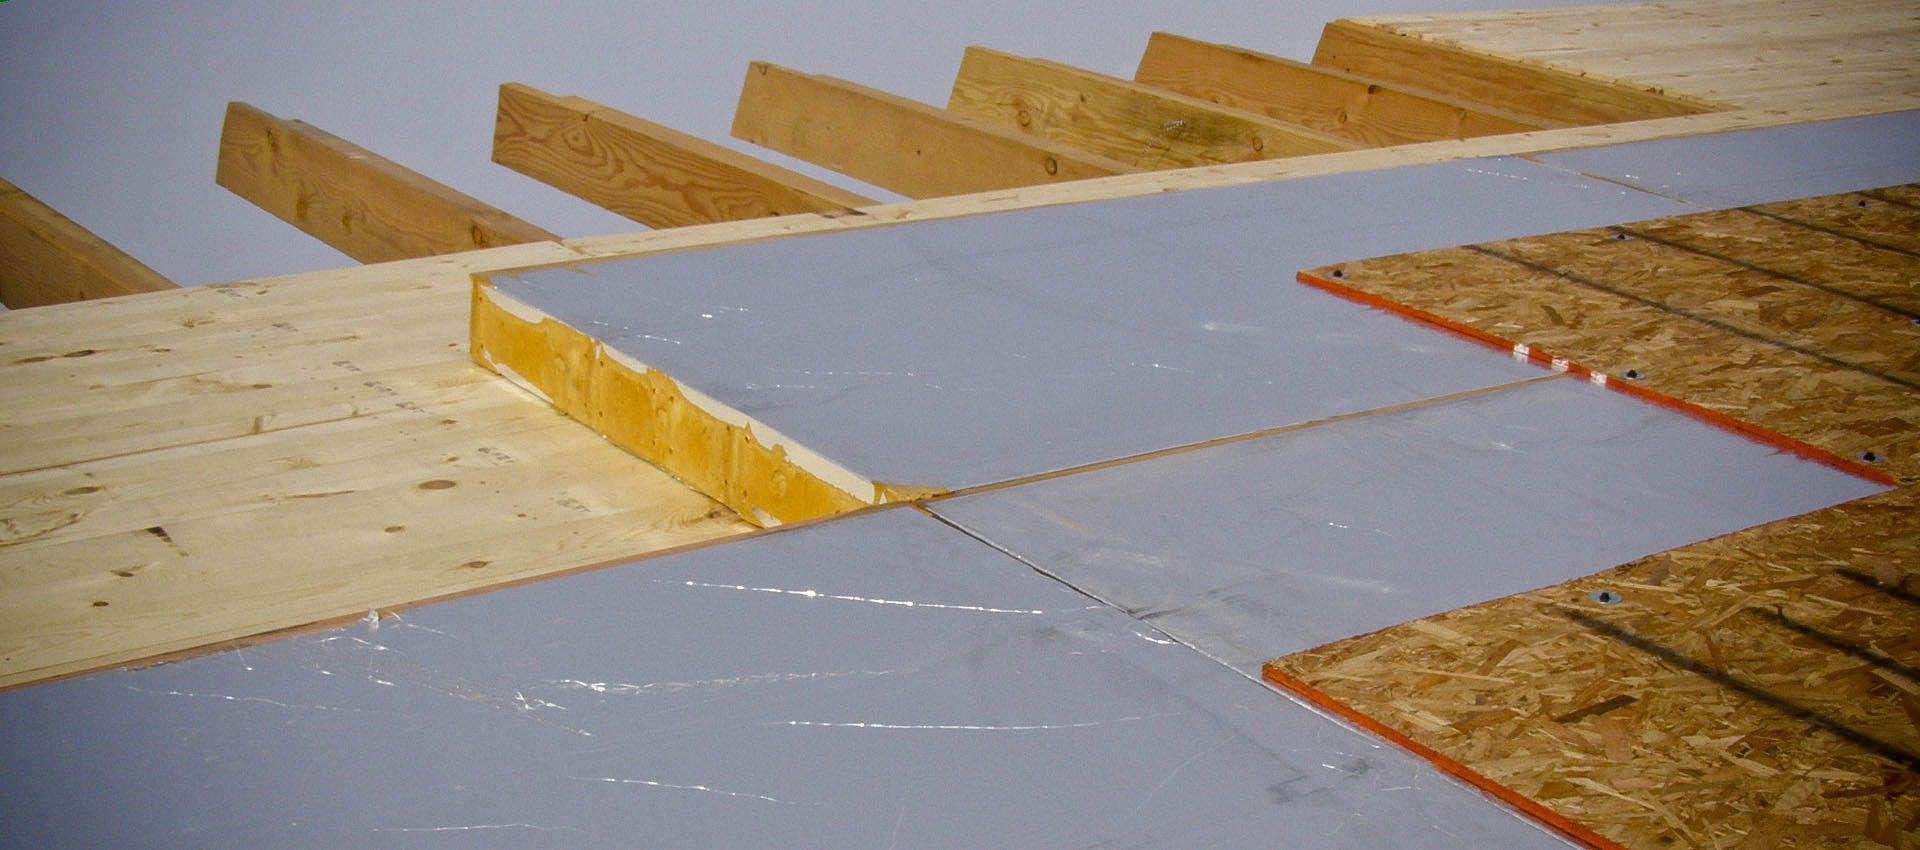 Structural Insulated Panels Raycore Building Systems Sips Structural Insulated Panels Insulated Panels Sip House